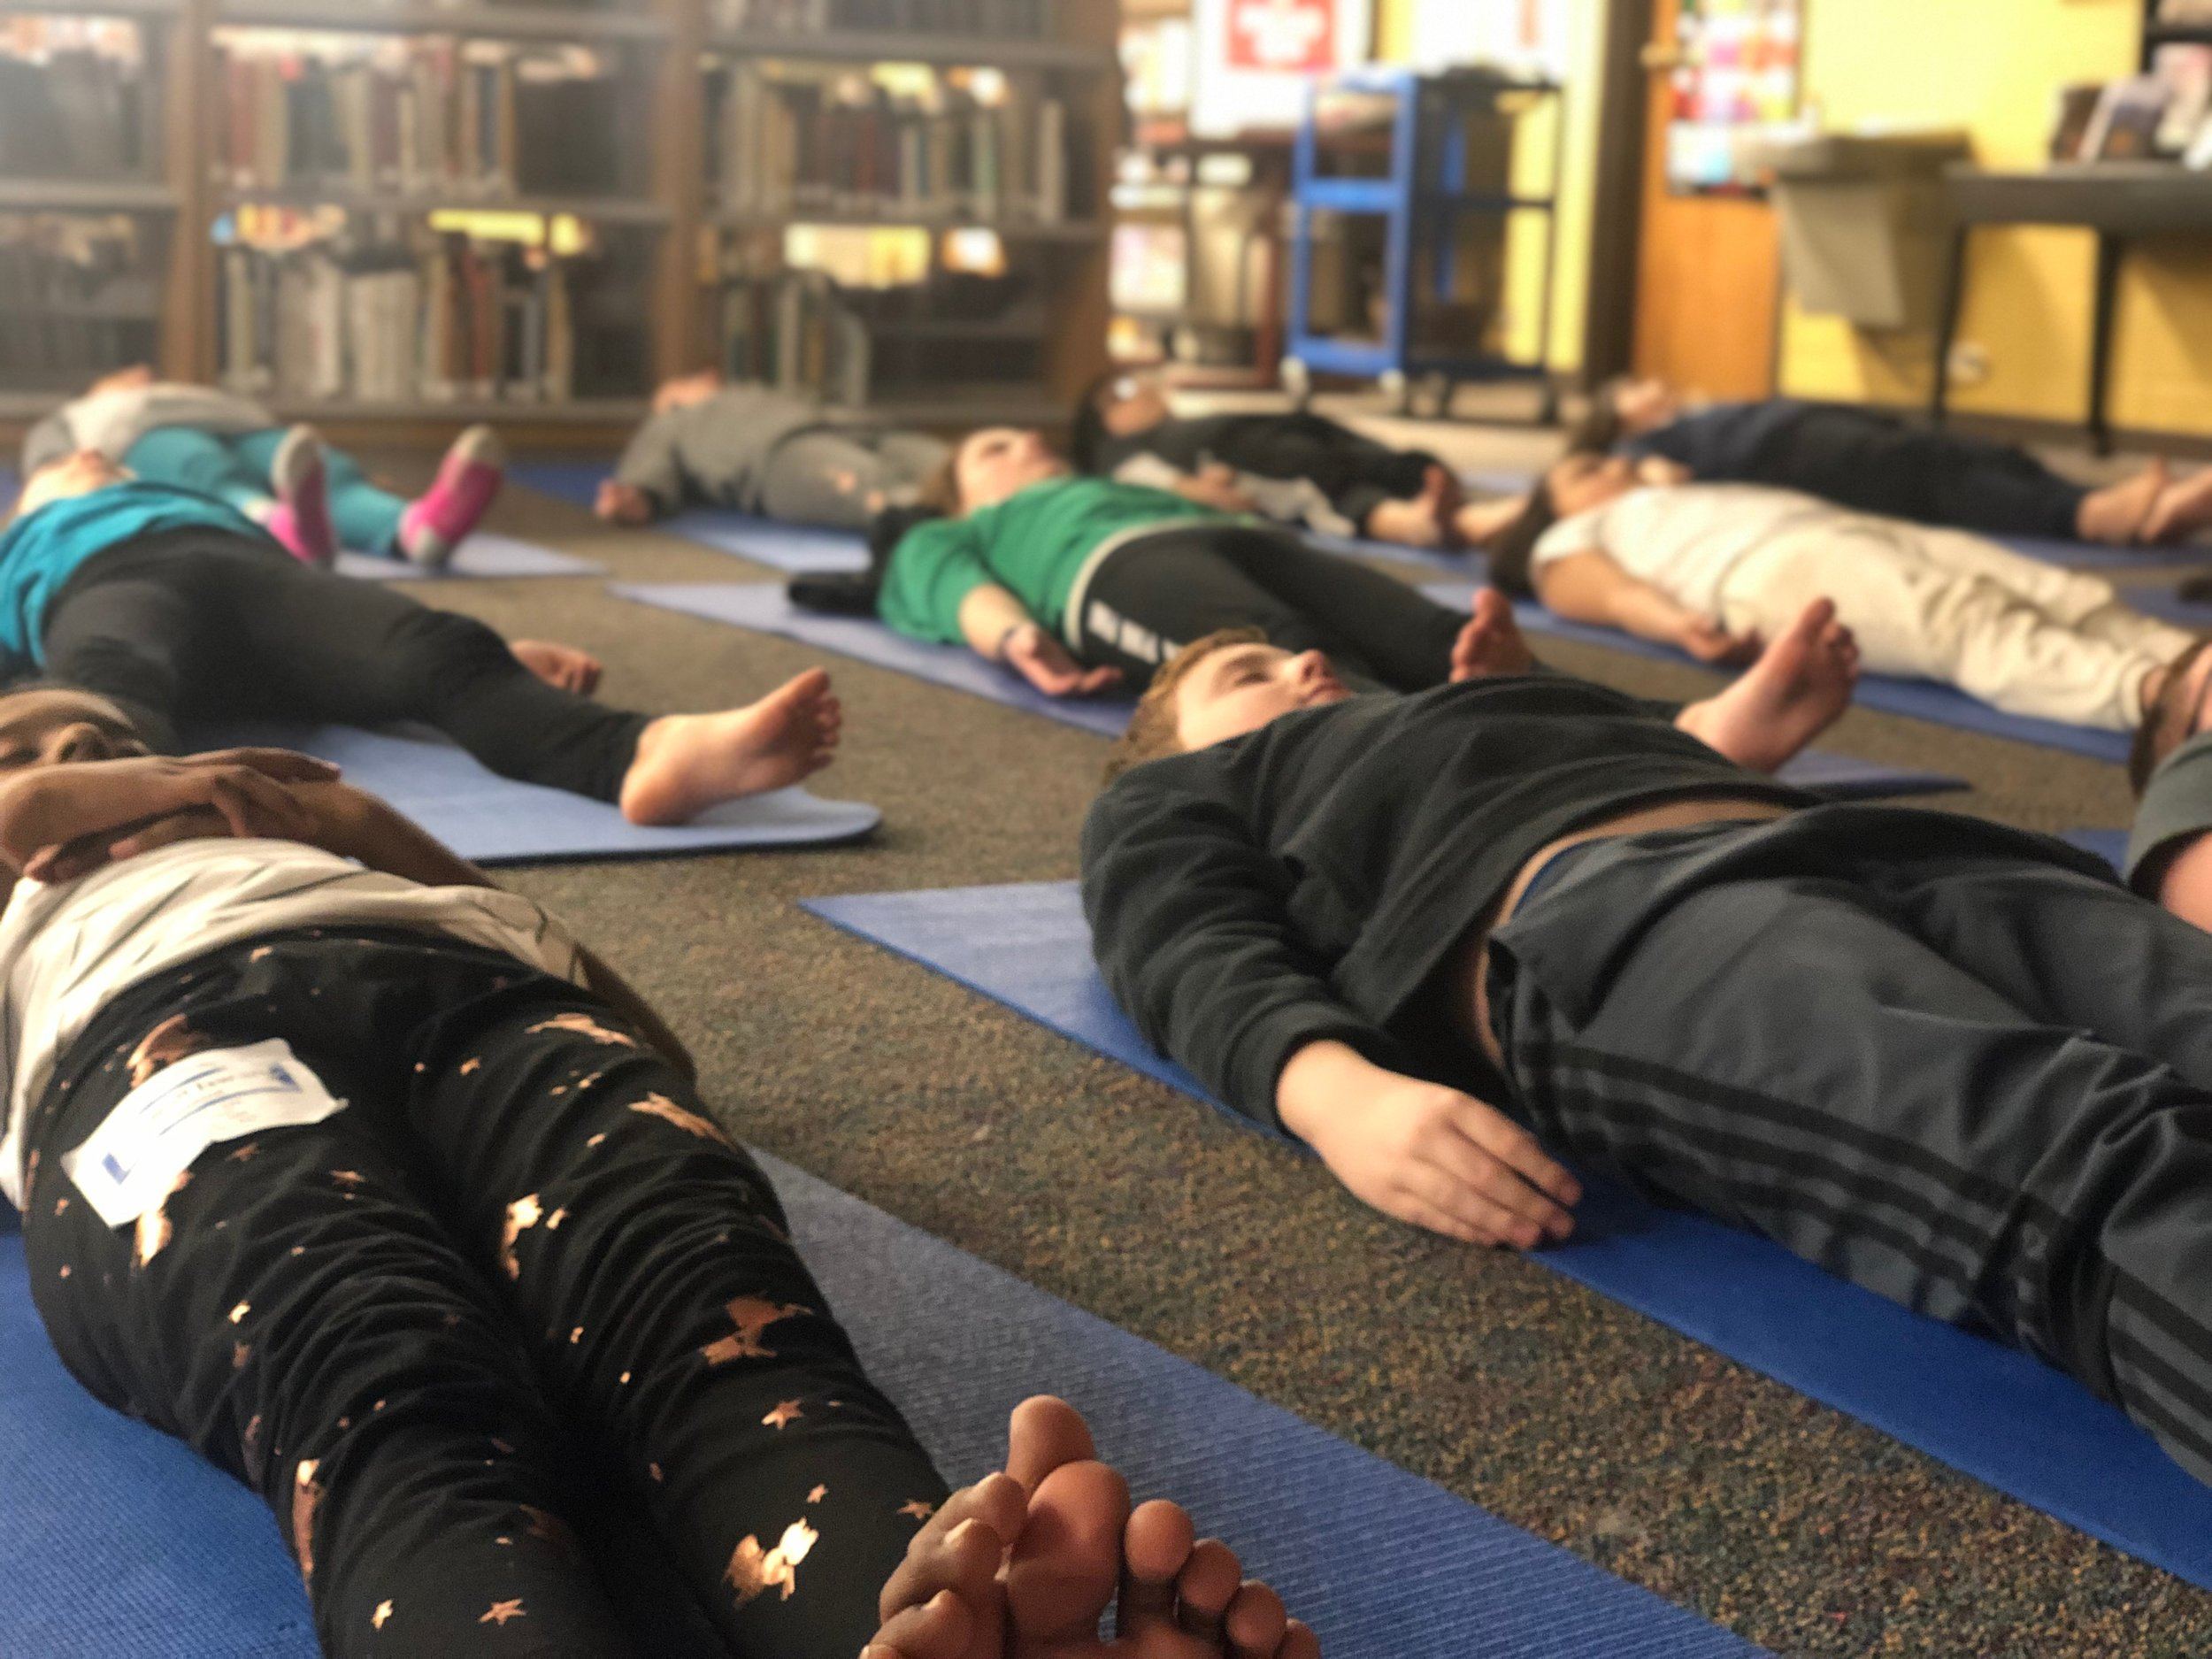 Students practicing yoga. One of 6 fitness and wellness activities offered as part of an interdisciplinary unit.